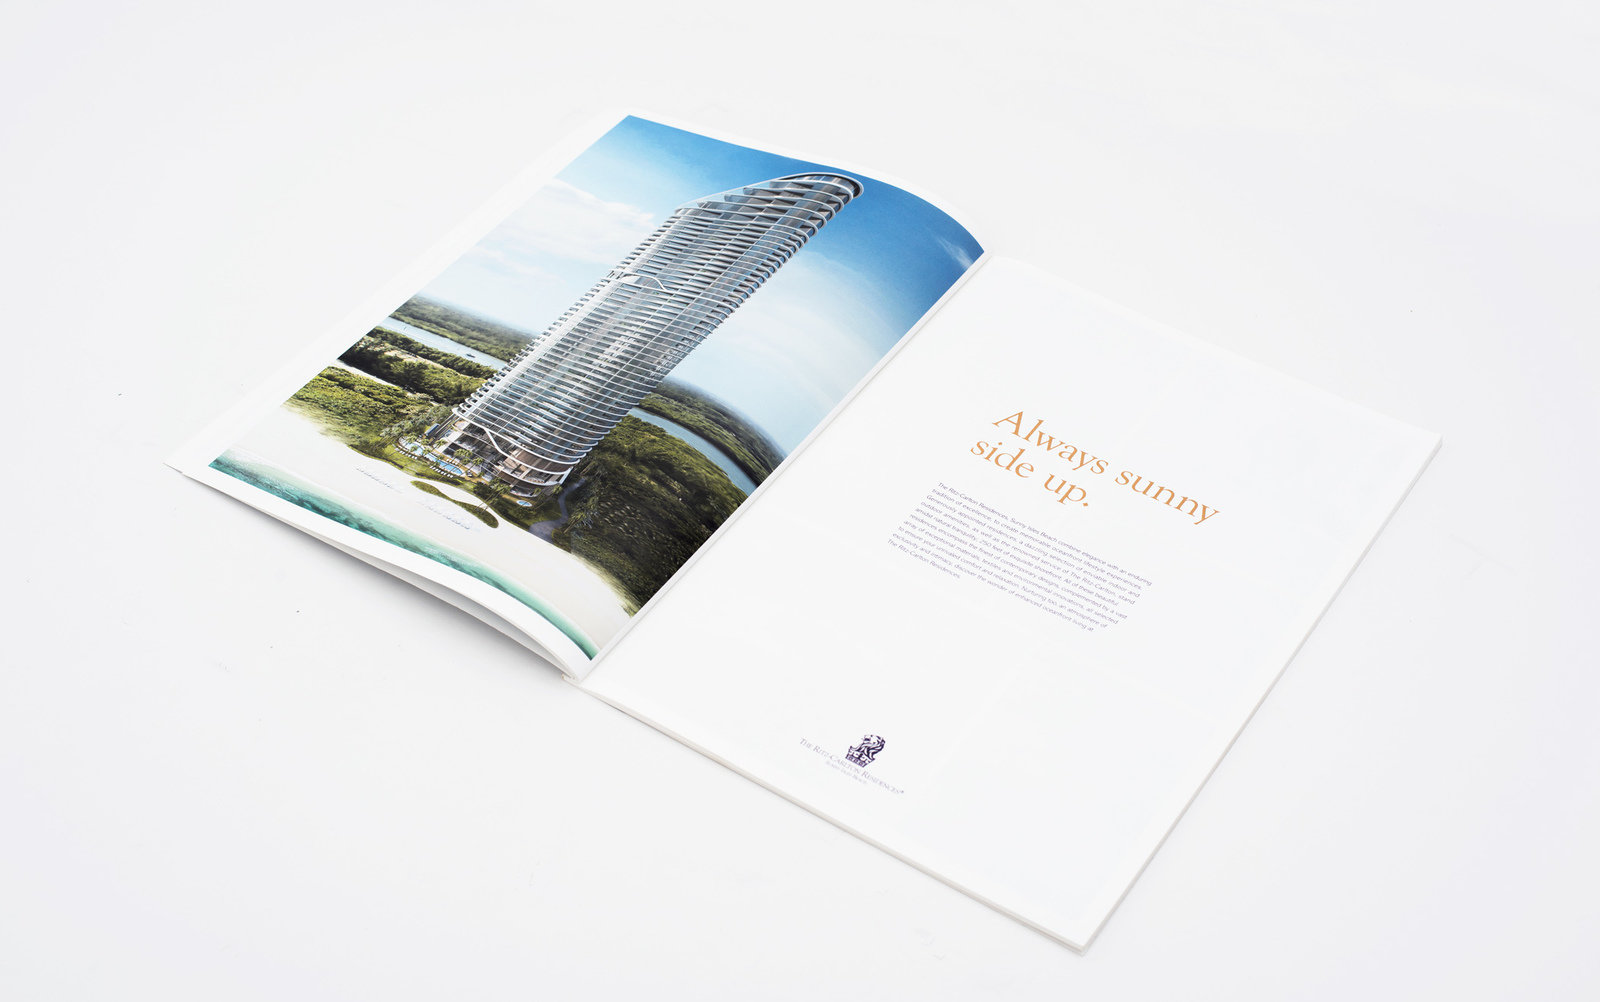 Watson and company ritz carlton brochure spread 02 1600 0x39x2100x1315 q85